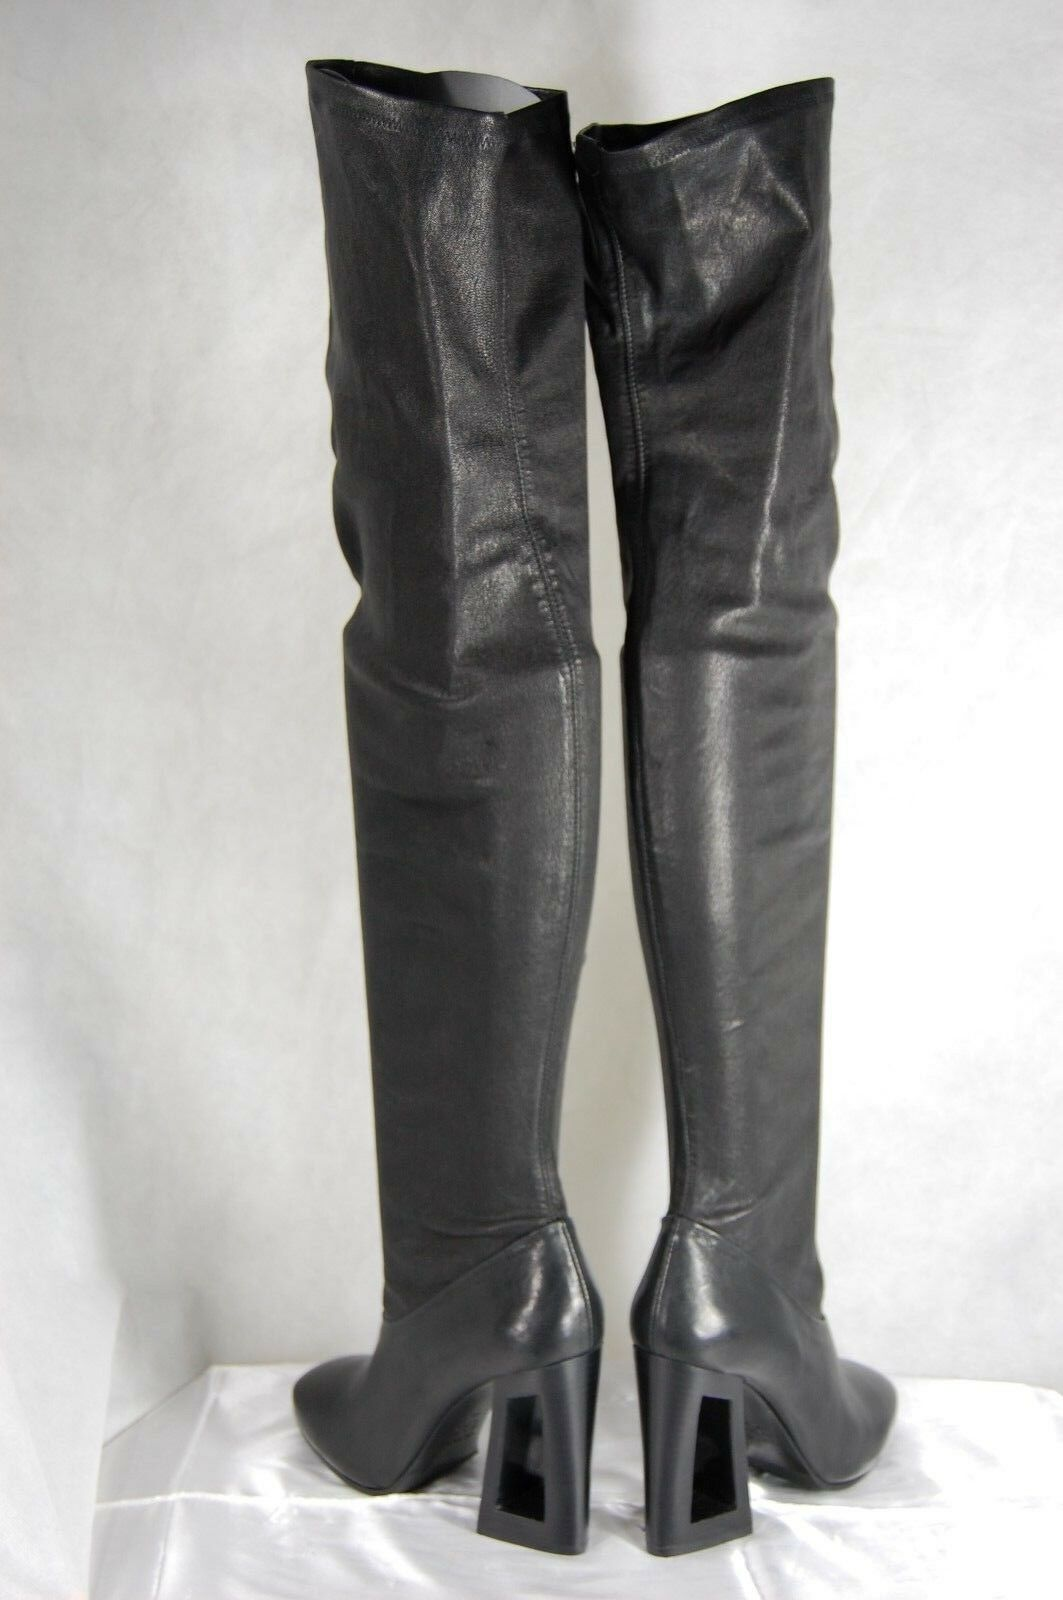 VIC MATE MADE IN ITALY schwarz LEATHER STRETCH OVER THE KNEE Stiefel EU 40 US 10